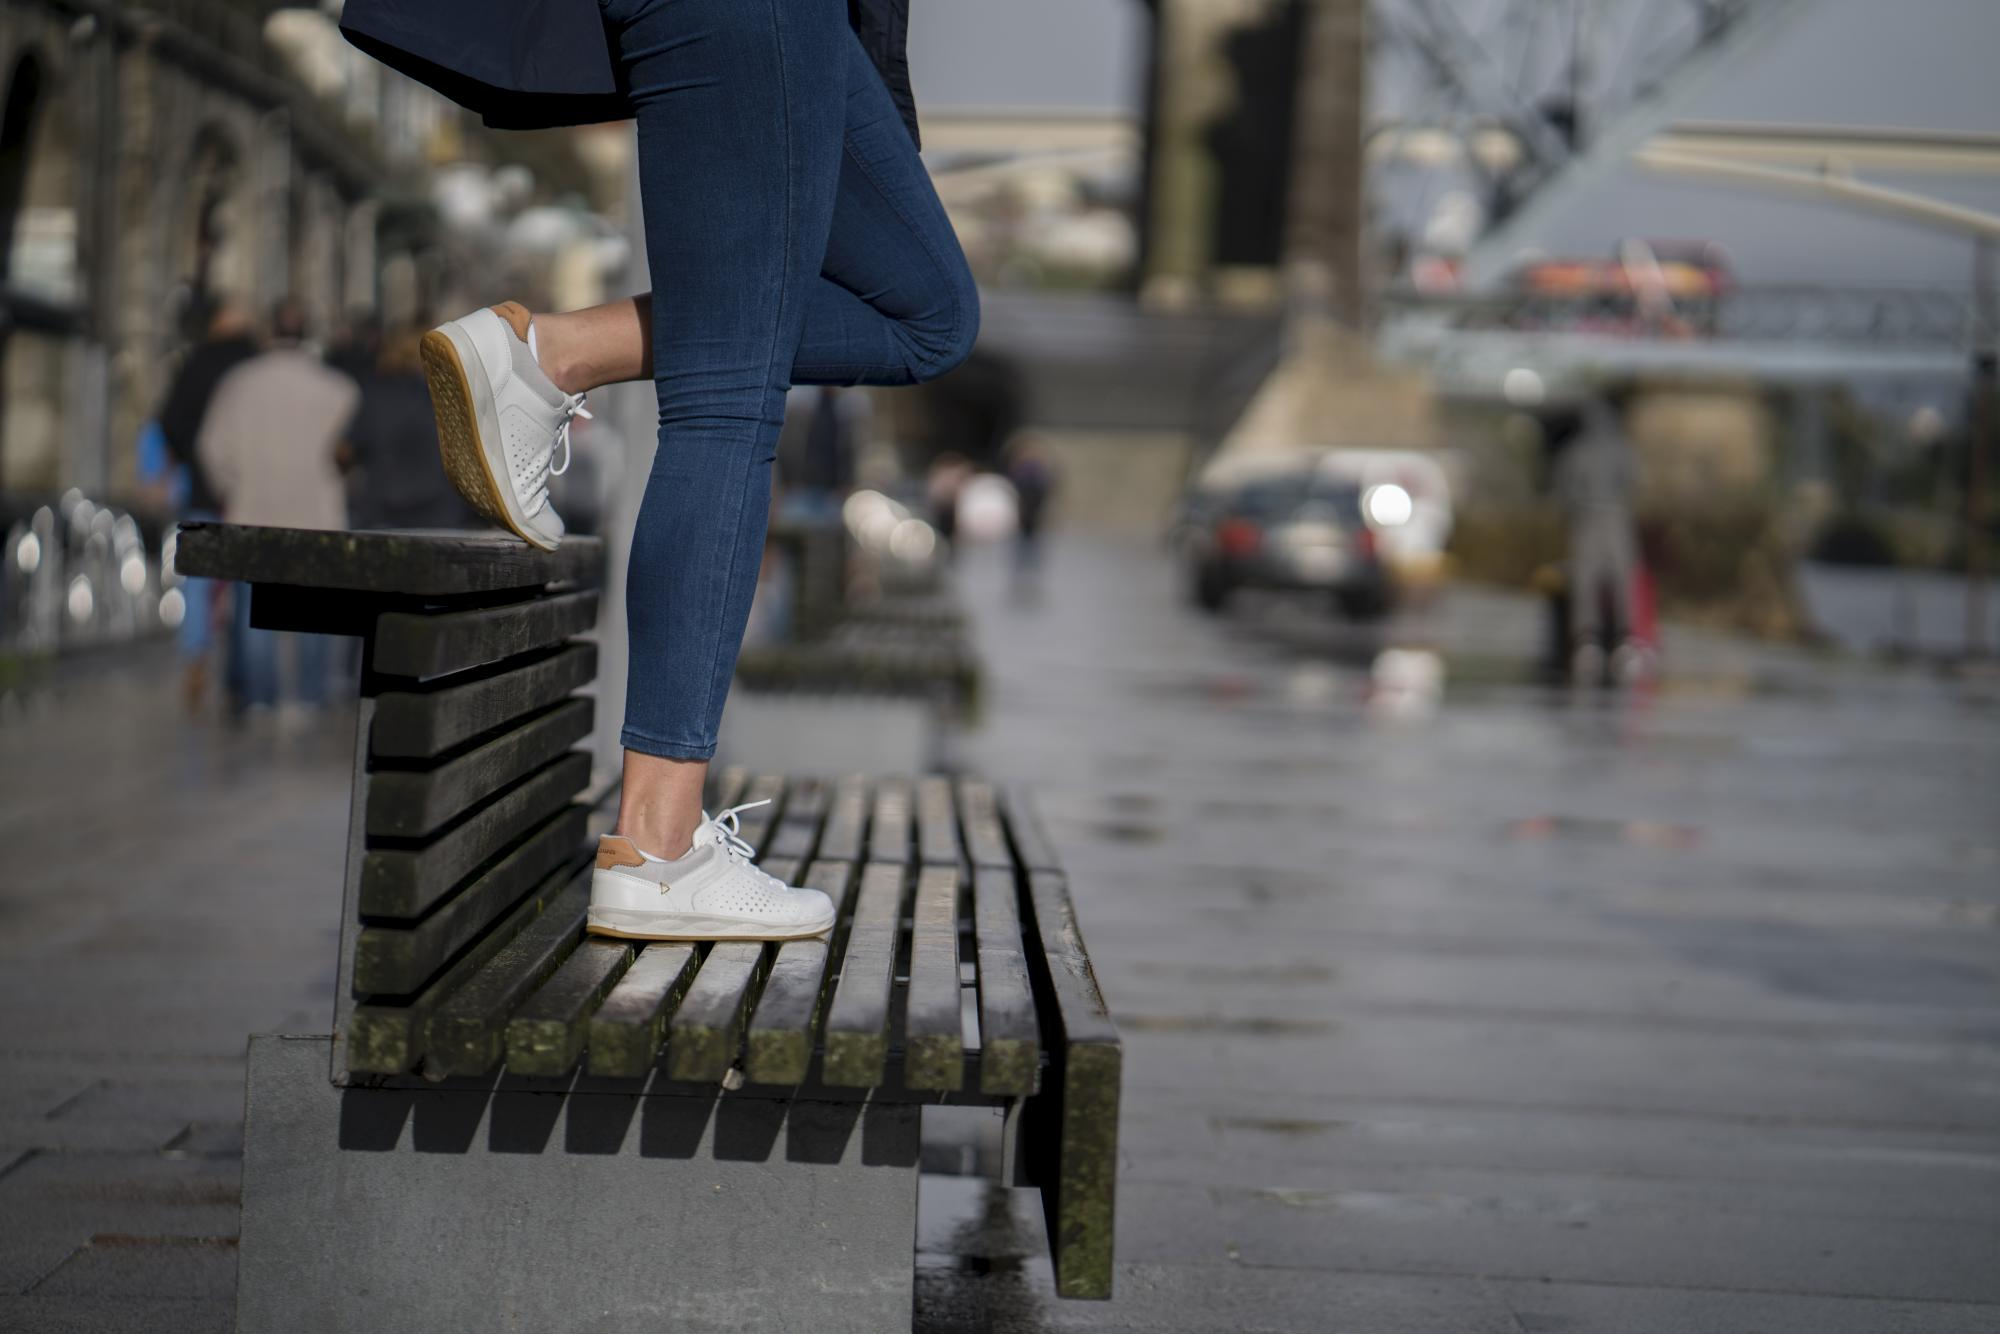 A woman wearing LOWA lo-cut footwear on a city bench